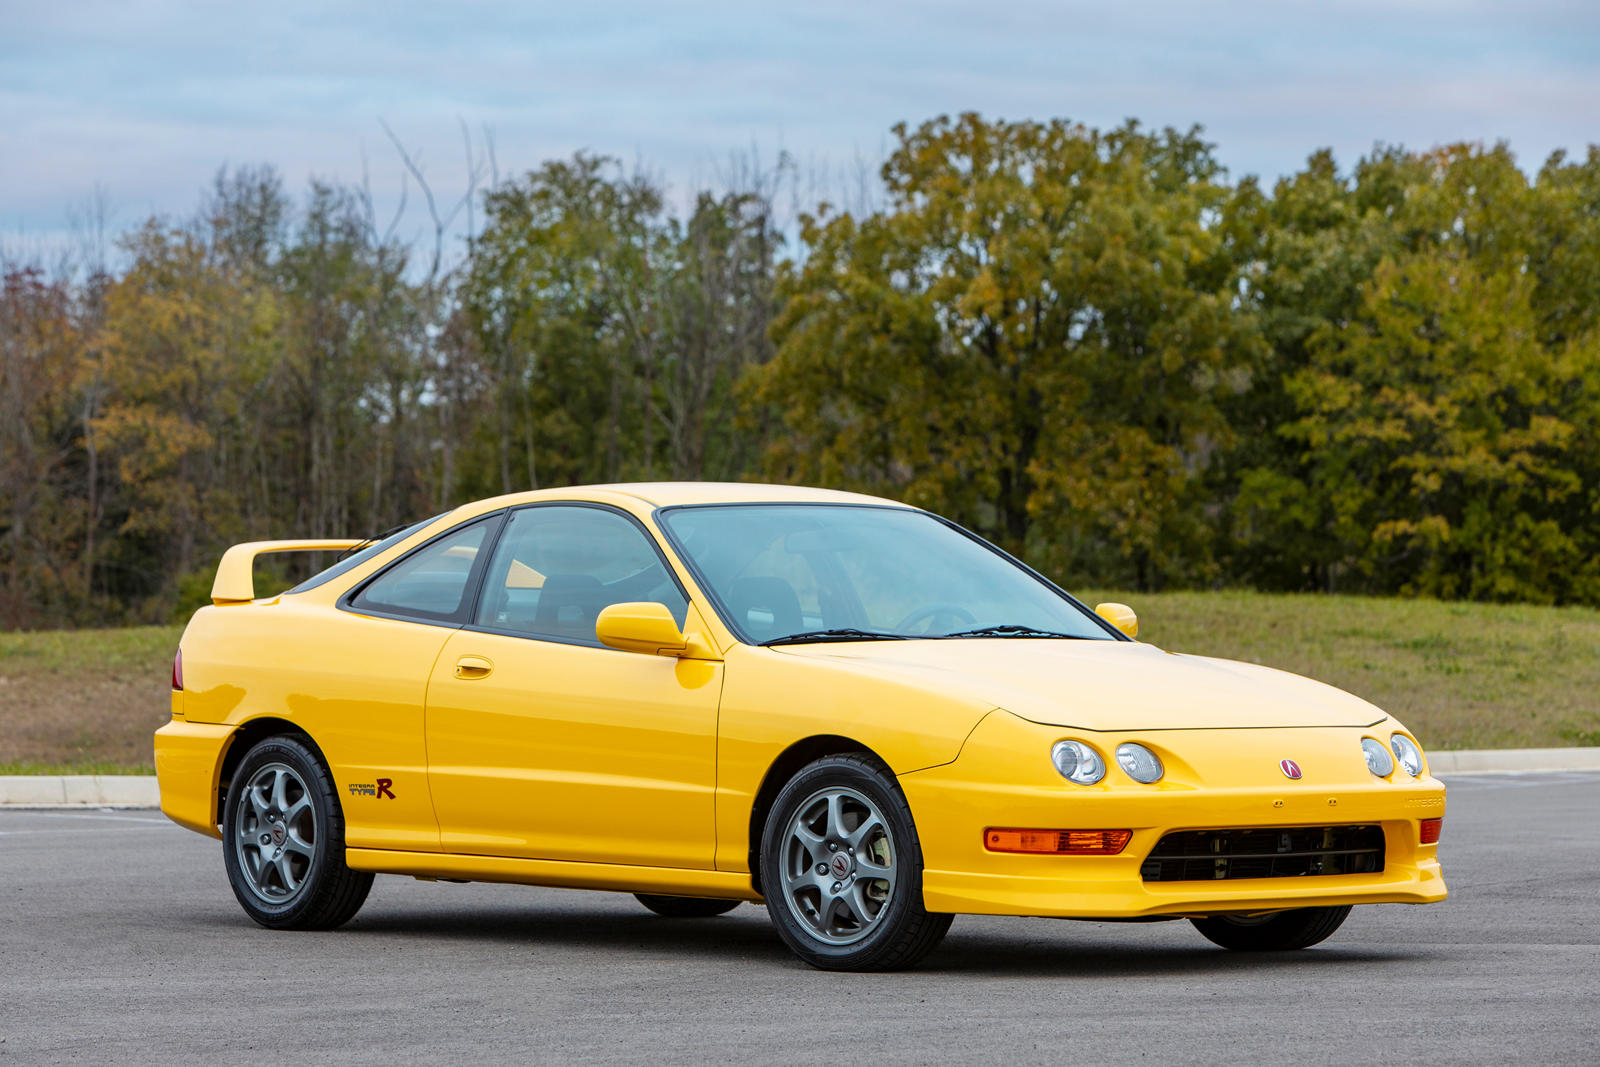 Acura Integra To Return As Compact Sedan Type S Model Mdx Type S Confirmed Autoevolution